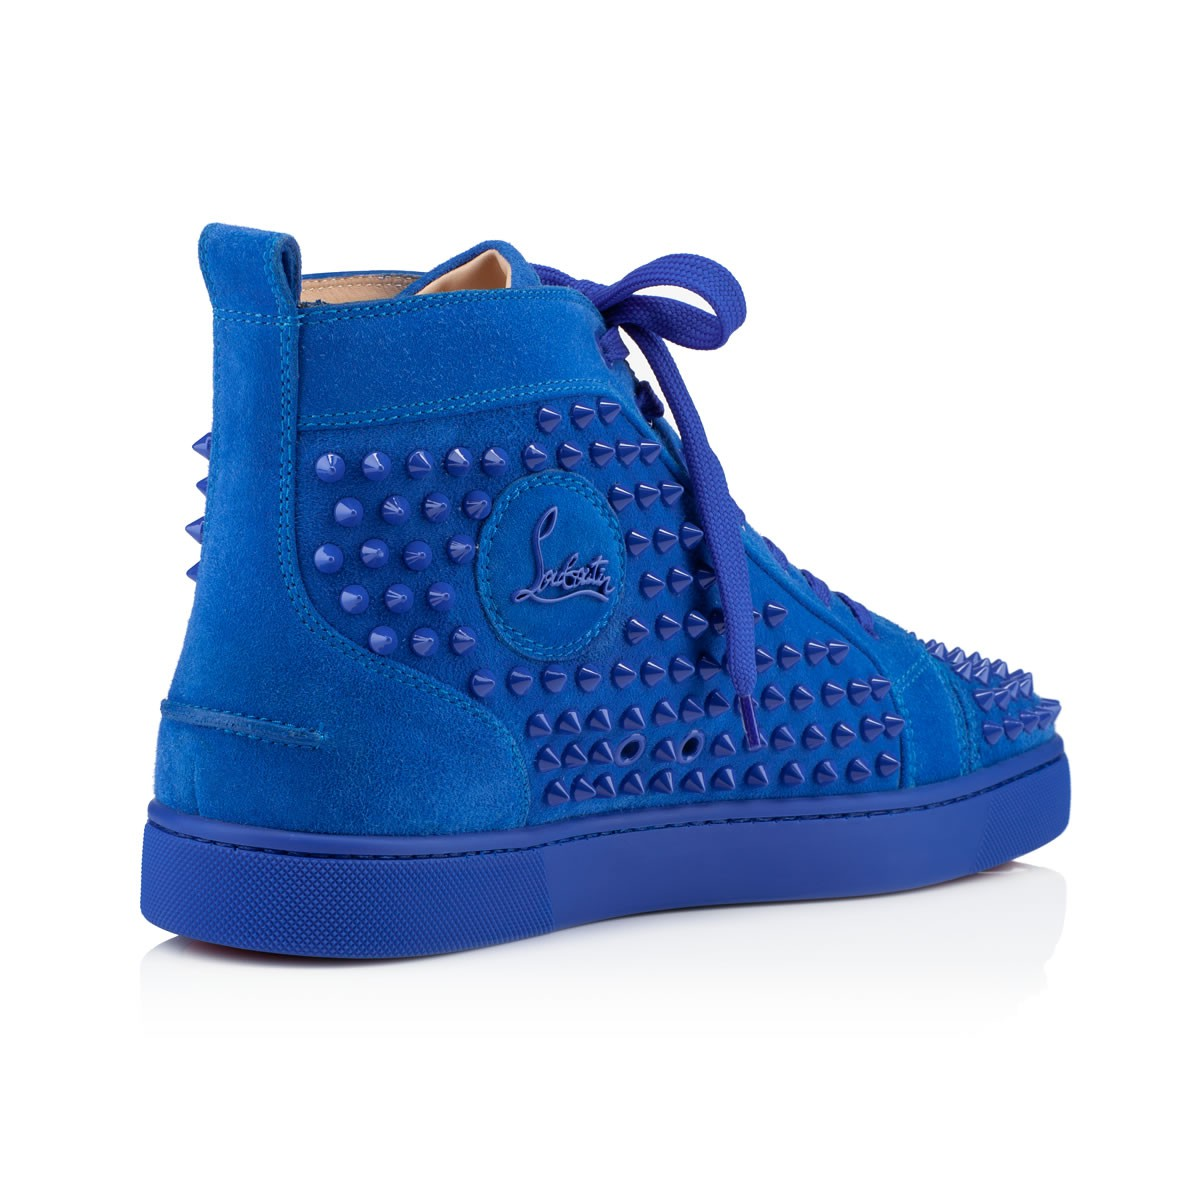 spiked loafers mens christian louboutin - Christian louboutin Men\u0026#39;s Louis Flat Sneakers in Blue for Men | Lyst